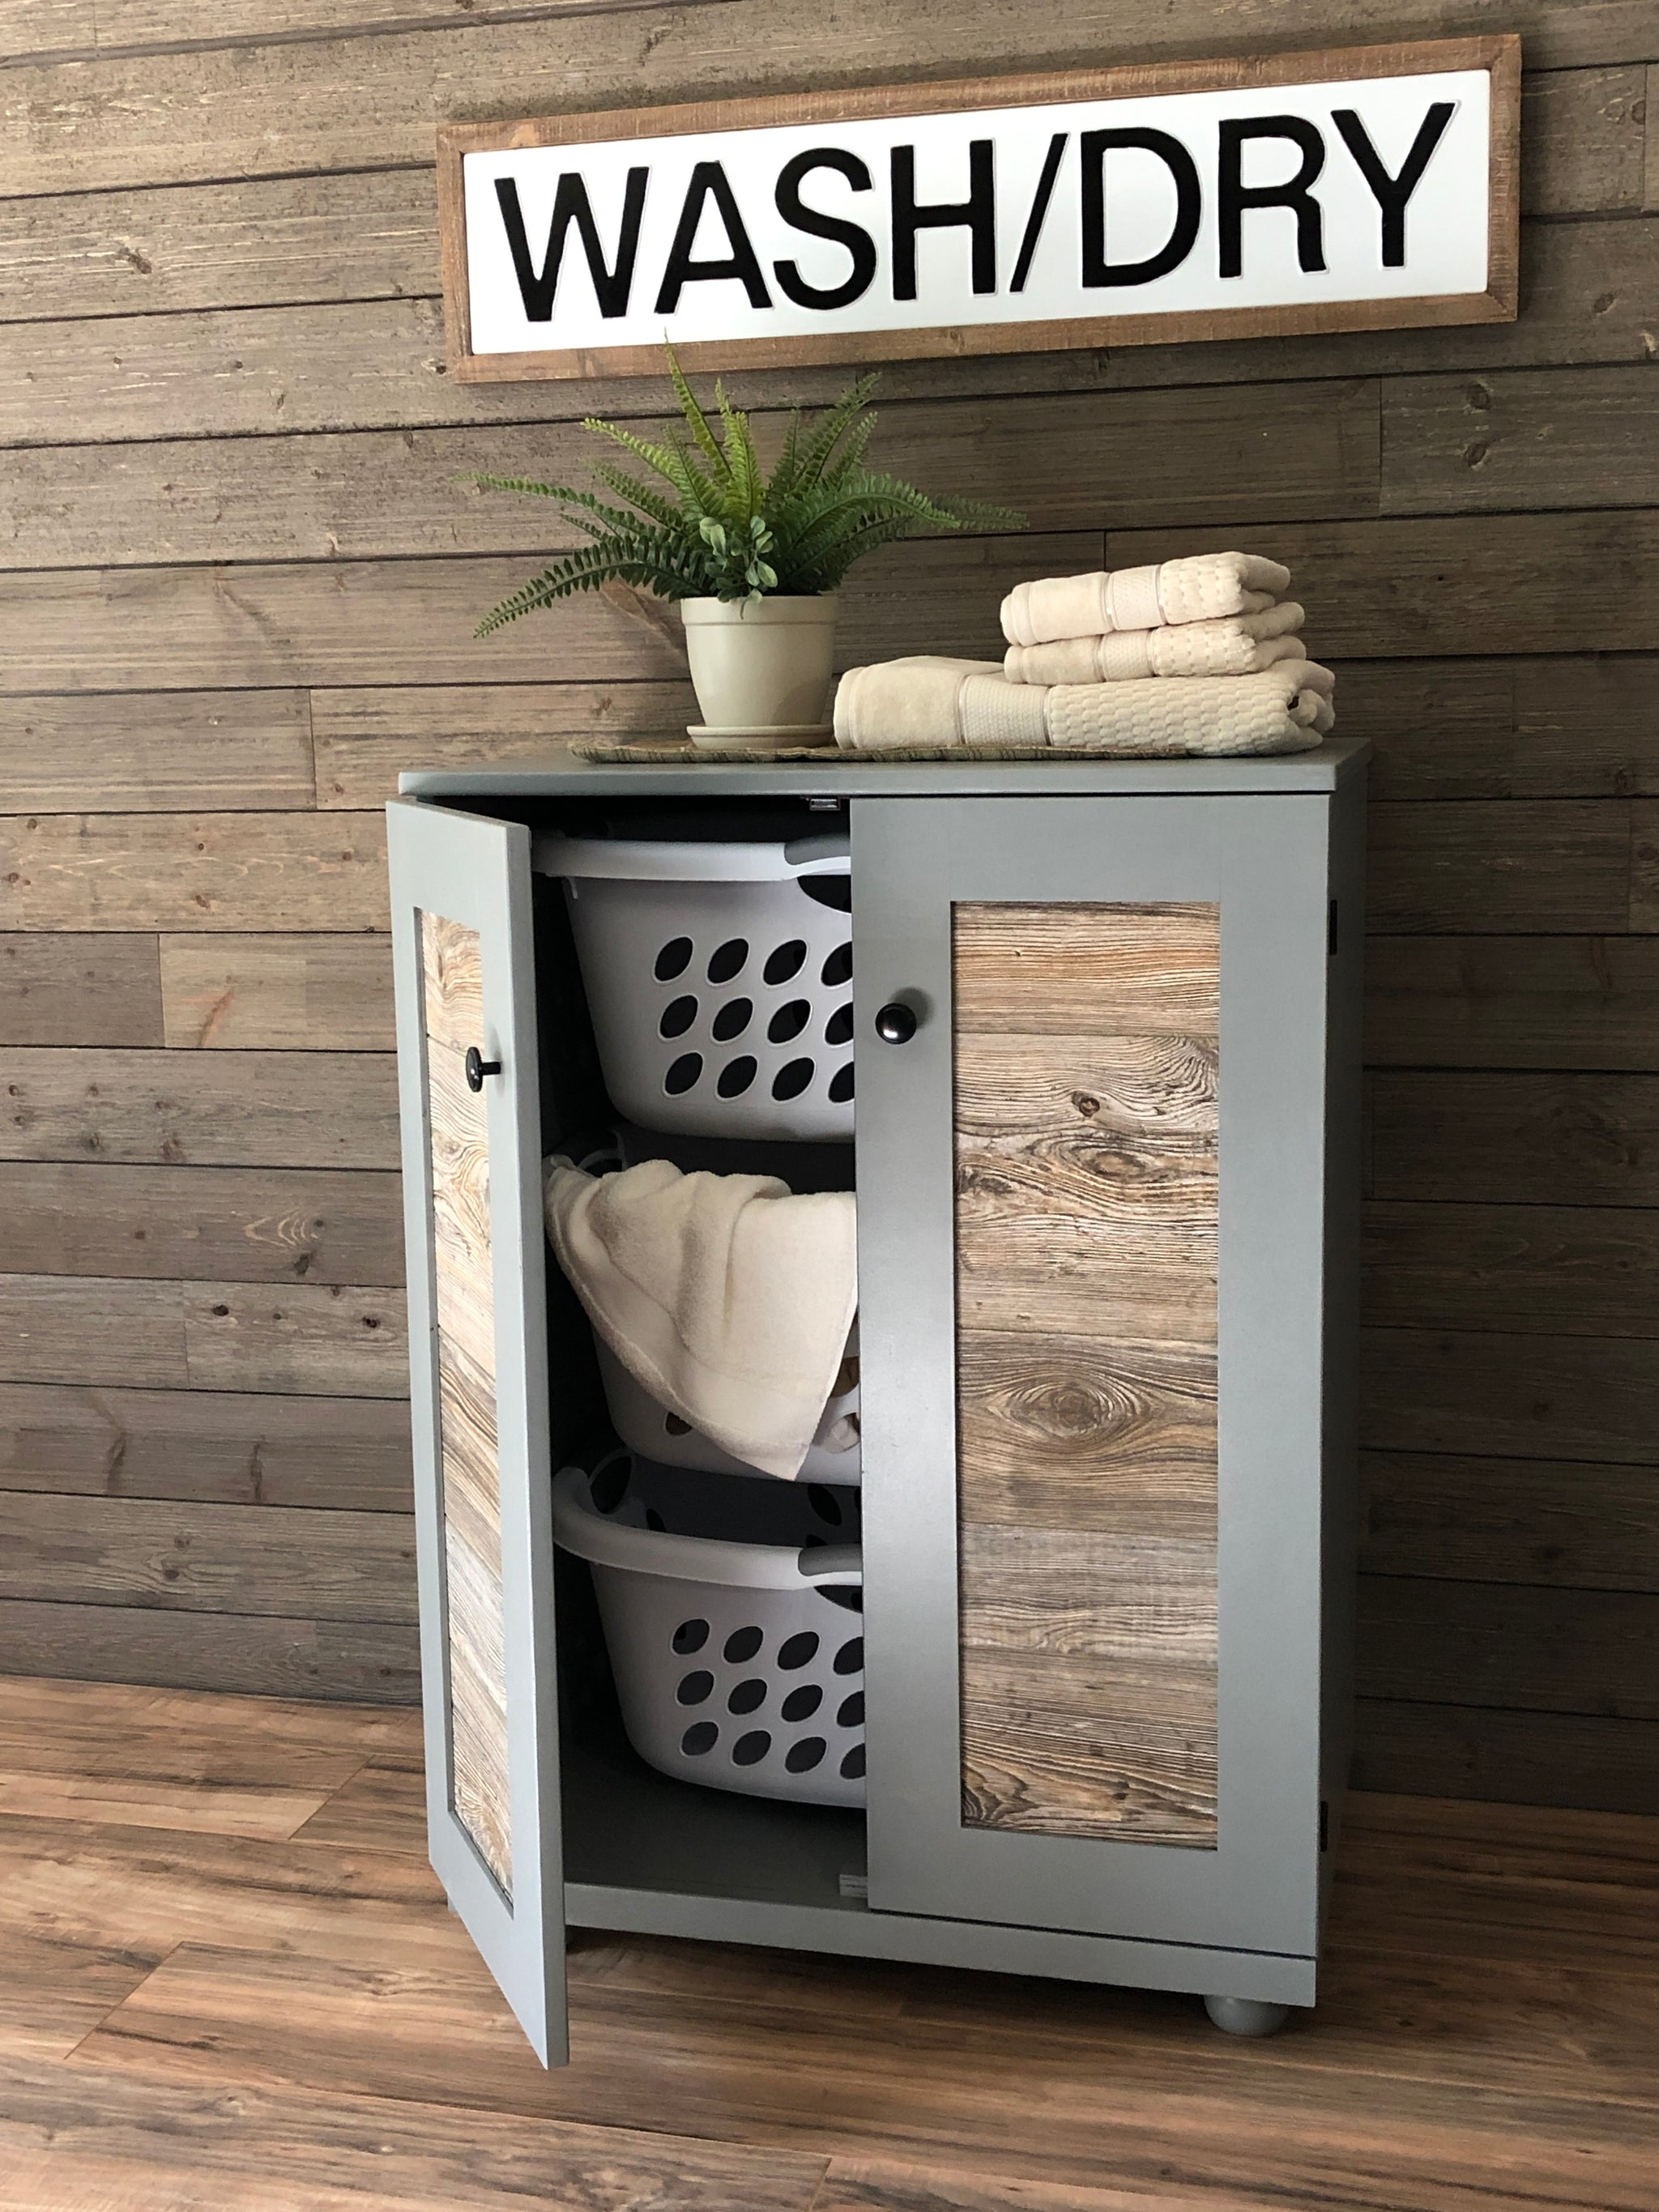 Ideas For Kitchen Shelf Ckets on tv for kitchen ideas, shelf bar ideas, shelf garage ideas, hutch for kitchen ideas, storage for kitchen ideas, shelf garden ideas, lighting for kitchen ideas, countertop for kitchen ideas, shelf decorating ideas, wall for kitchen ideas, cabinets for kitchen ideas,